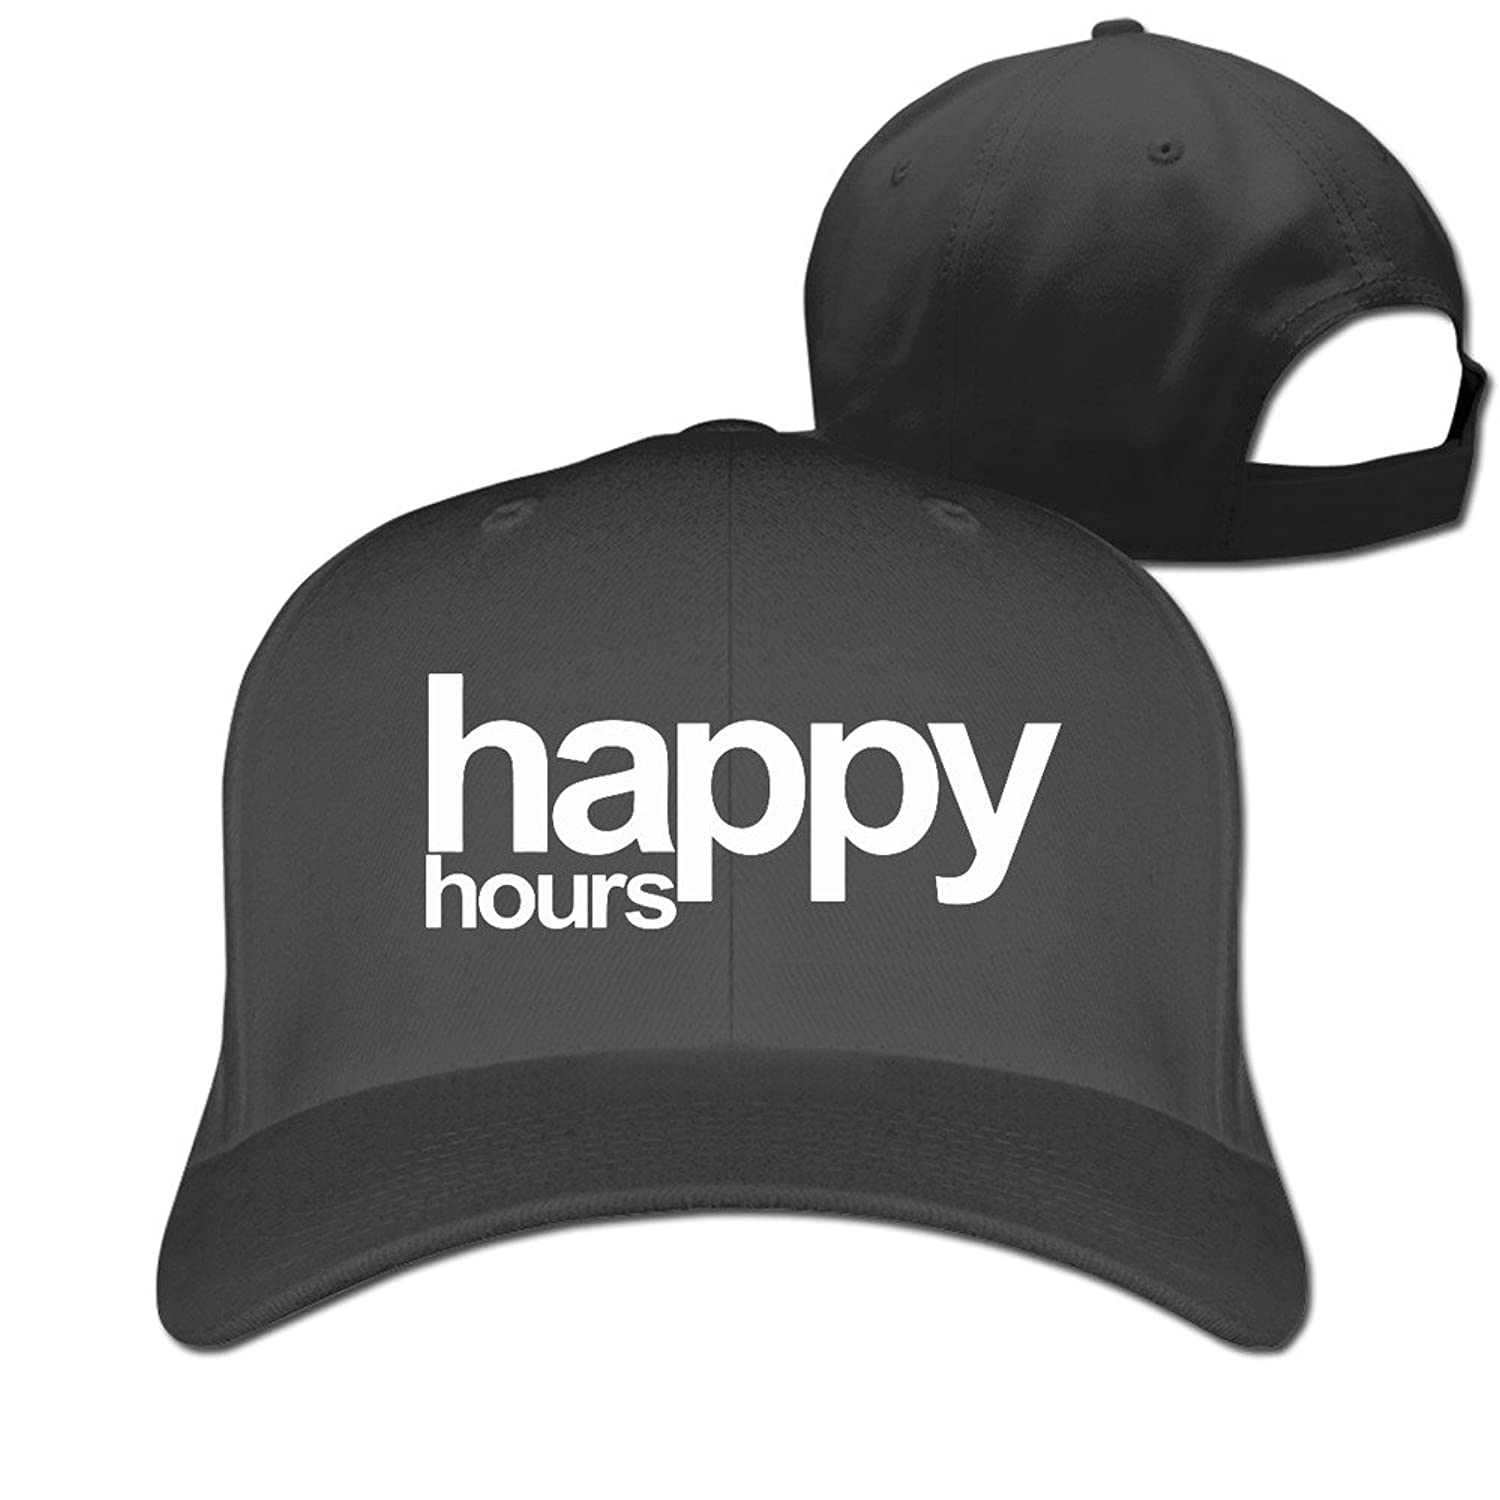 HNN Unisex Happy Hours Peaked Baseball Caps Hats